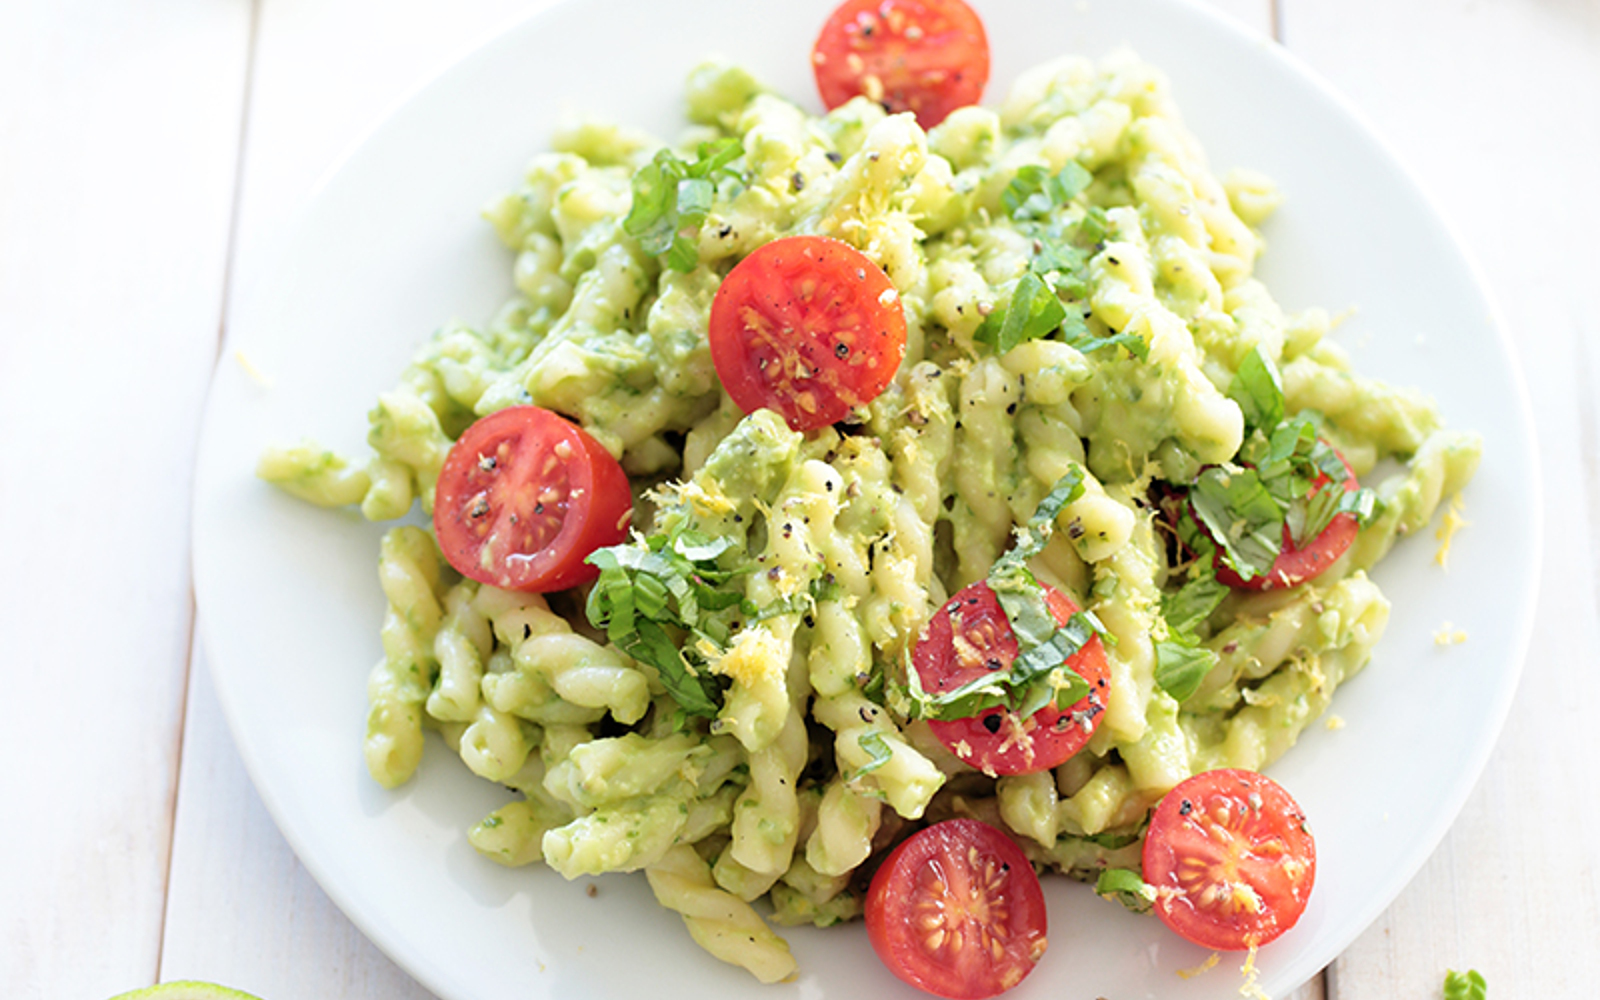 Creamy Avocado Pasta With Cherry Tomatoes